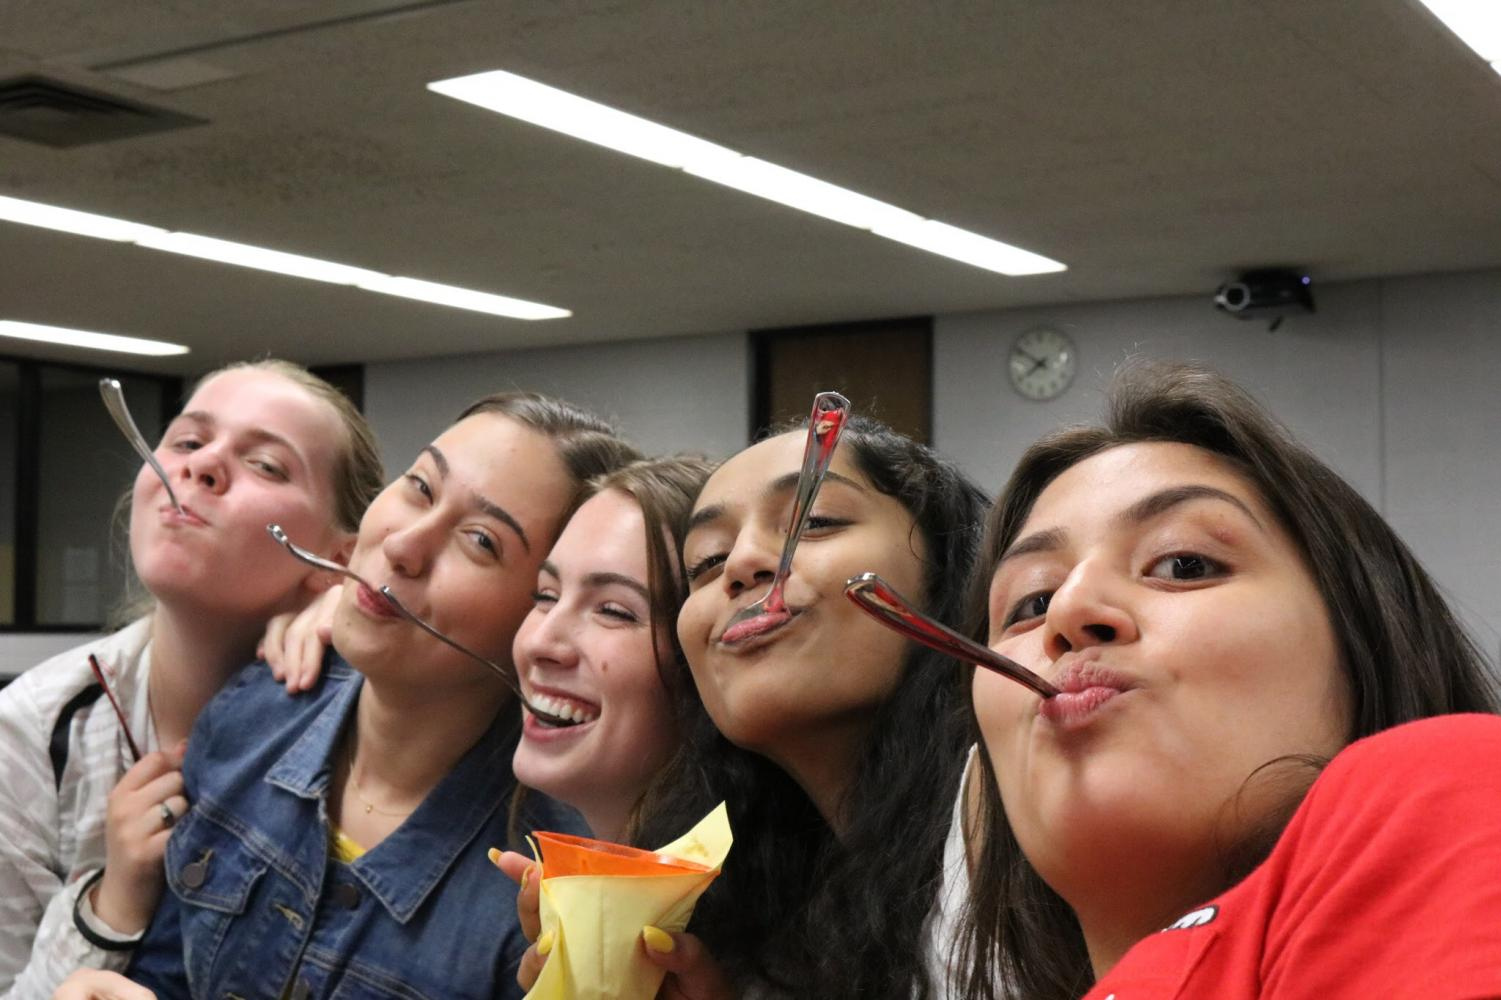 JCL juniors enjoy delicious gelato (from left to right: Maria Cafeo, Olivia Fras, Haley Williams, Priyanka John, and Sofia Mansoor)